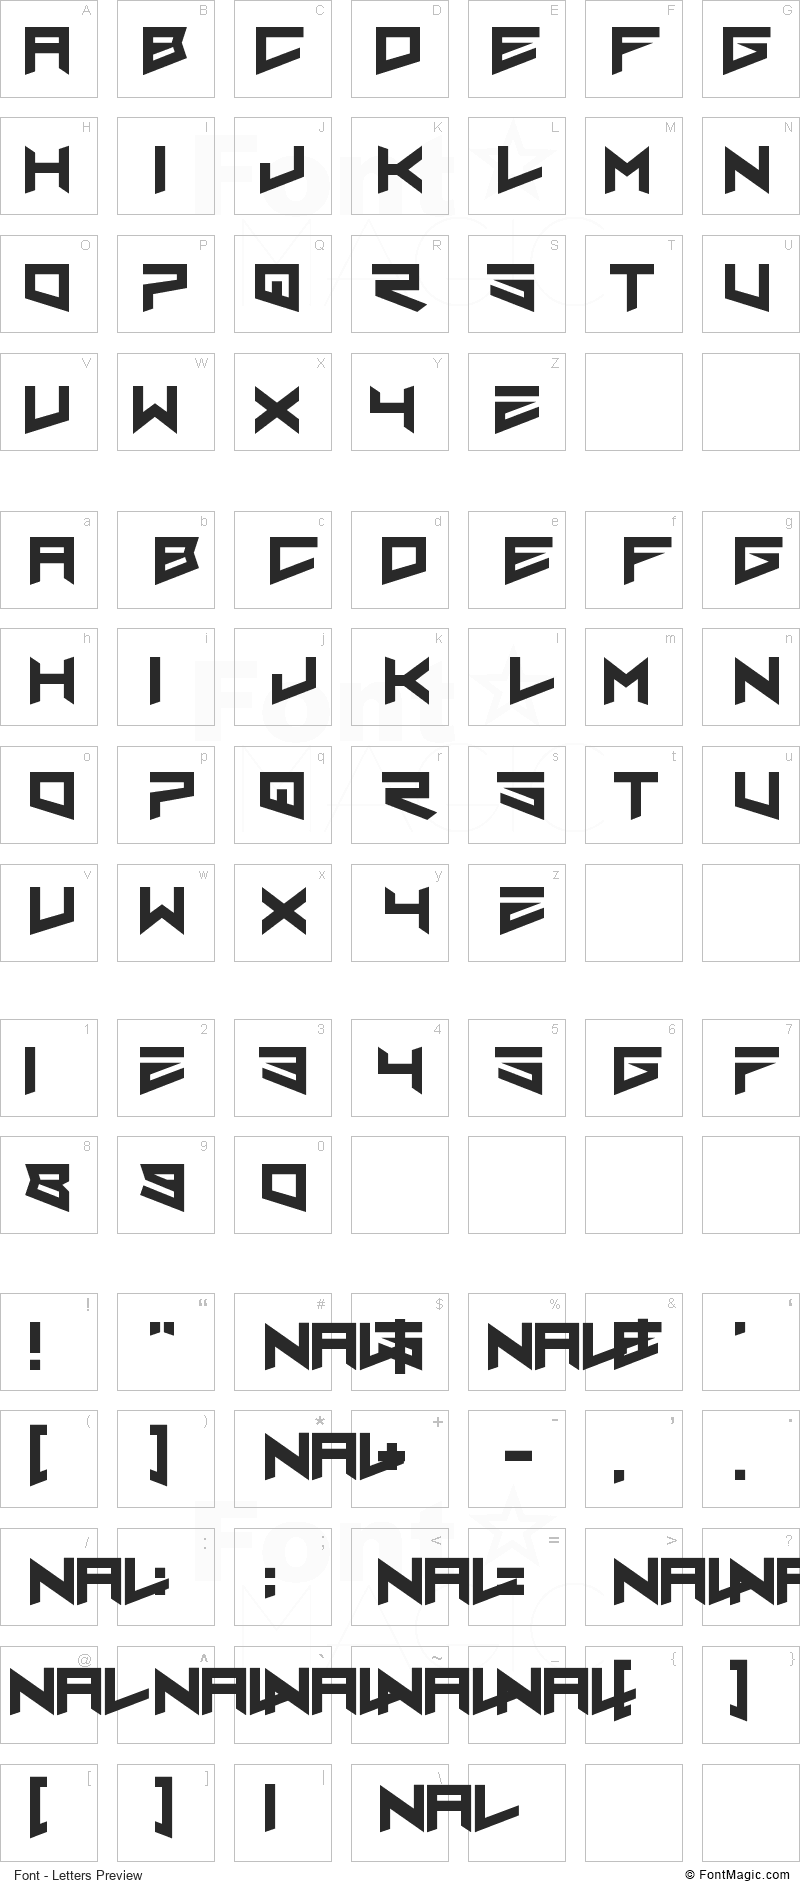 Nero Font - All Latters Preview Chart